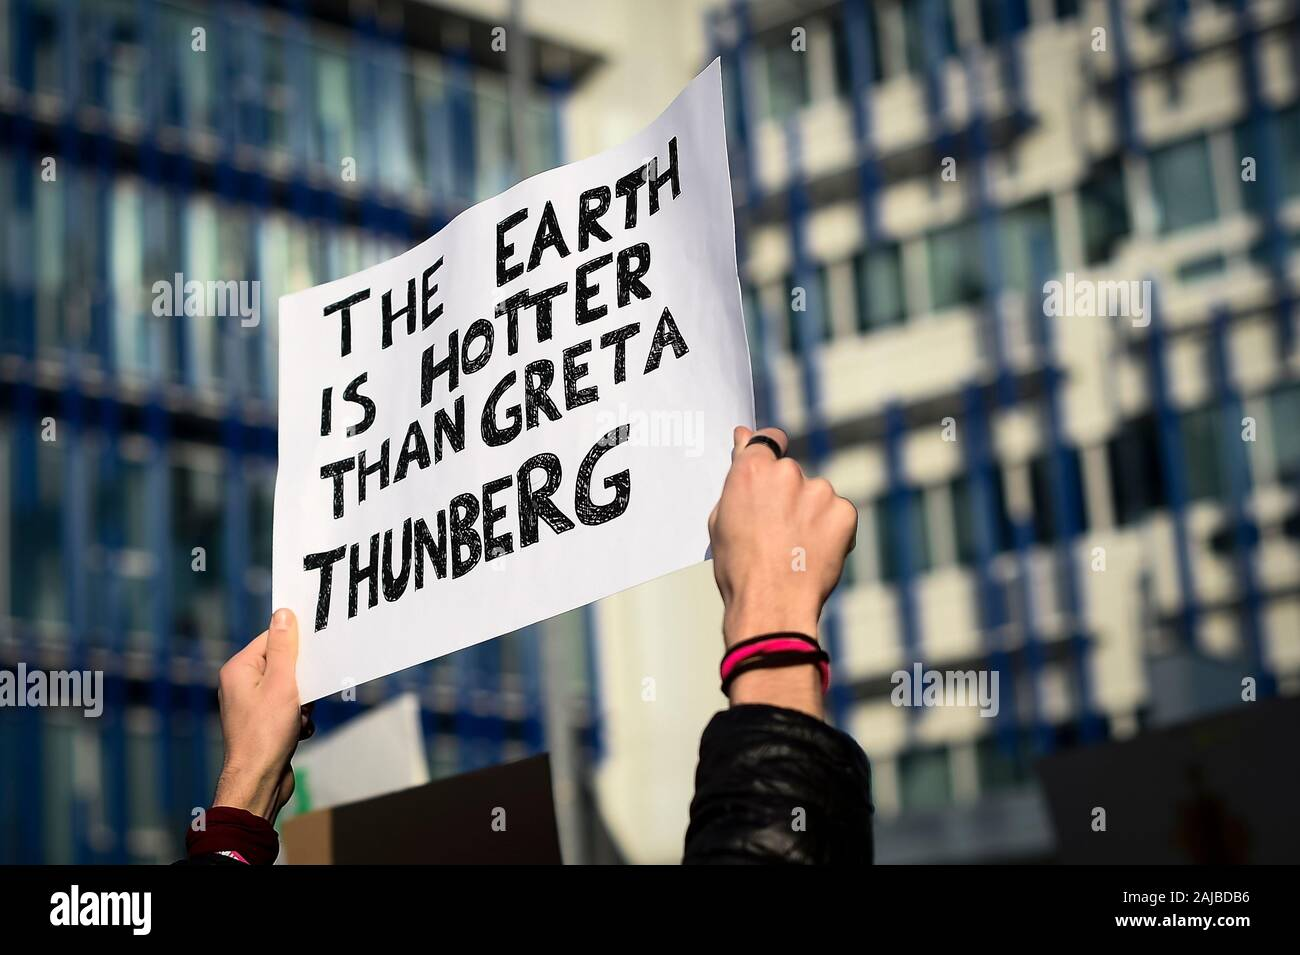 Turin, Italy - 29 November, 2019: A placard reading 'The earth is hotter than Greta Thunberg' is seen during 'Fridays for future' demonstration, a worldwide climate strike against governmental inaction towards climate breakdown and environmental pollution. Credit: Nicolò Campo/Alamy Live News Stock Photo